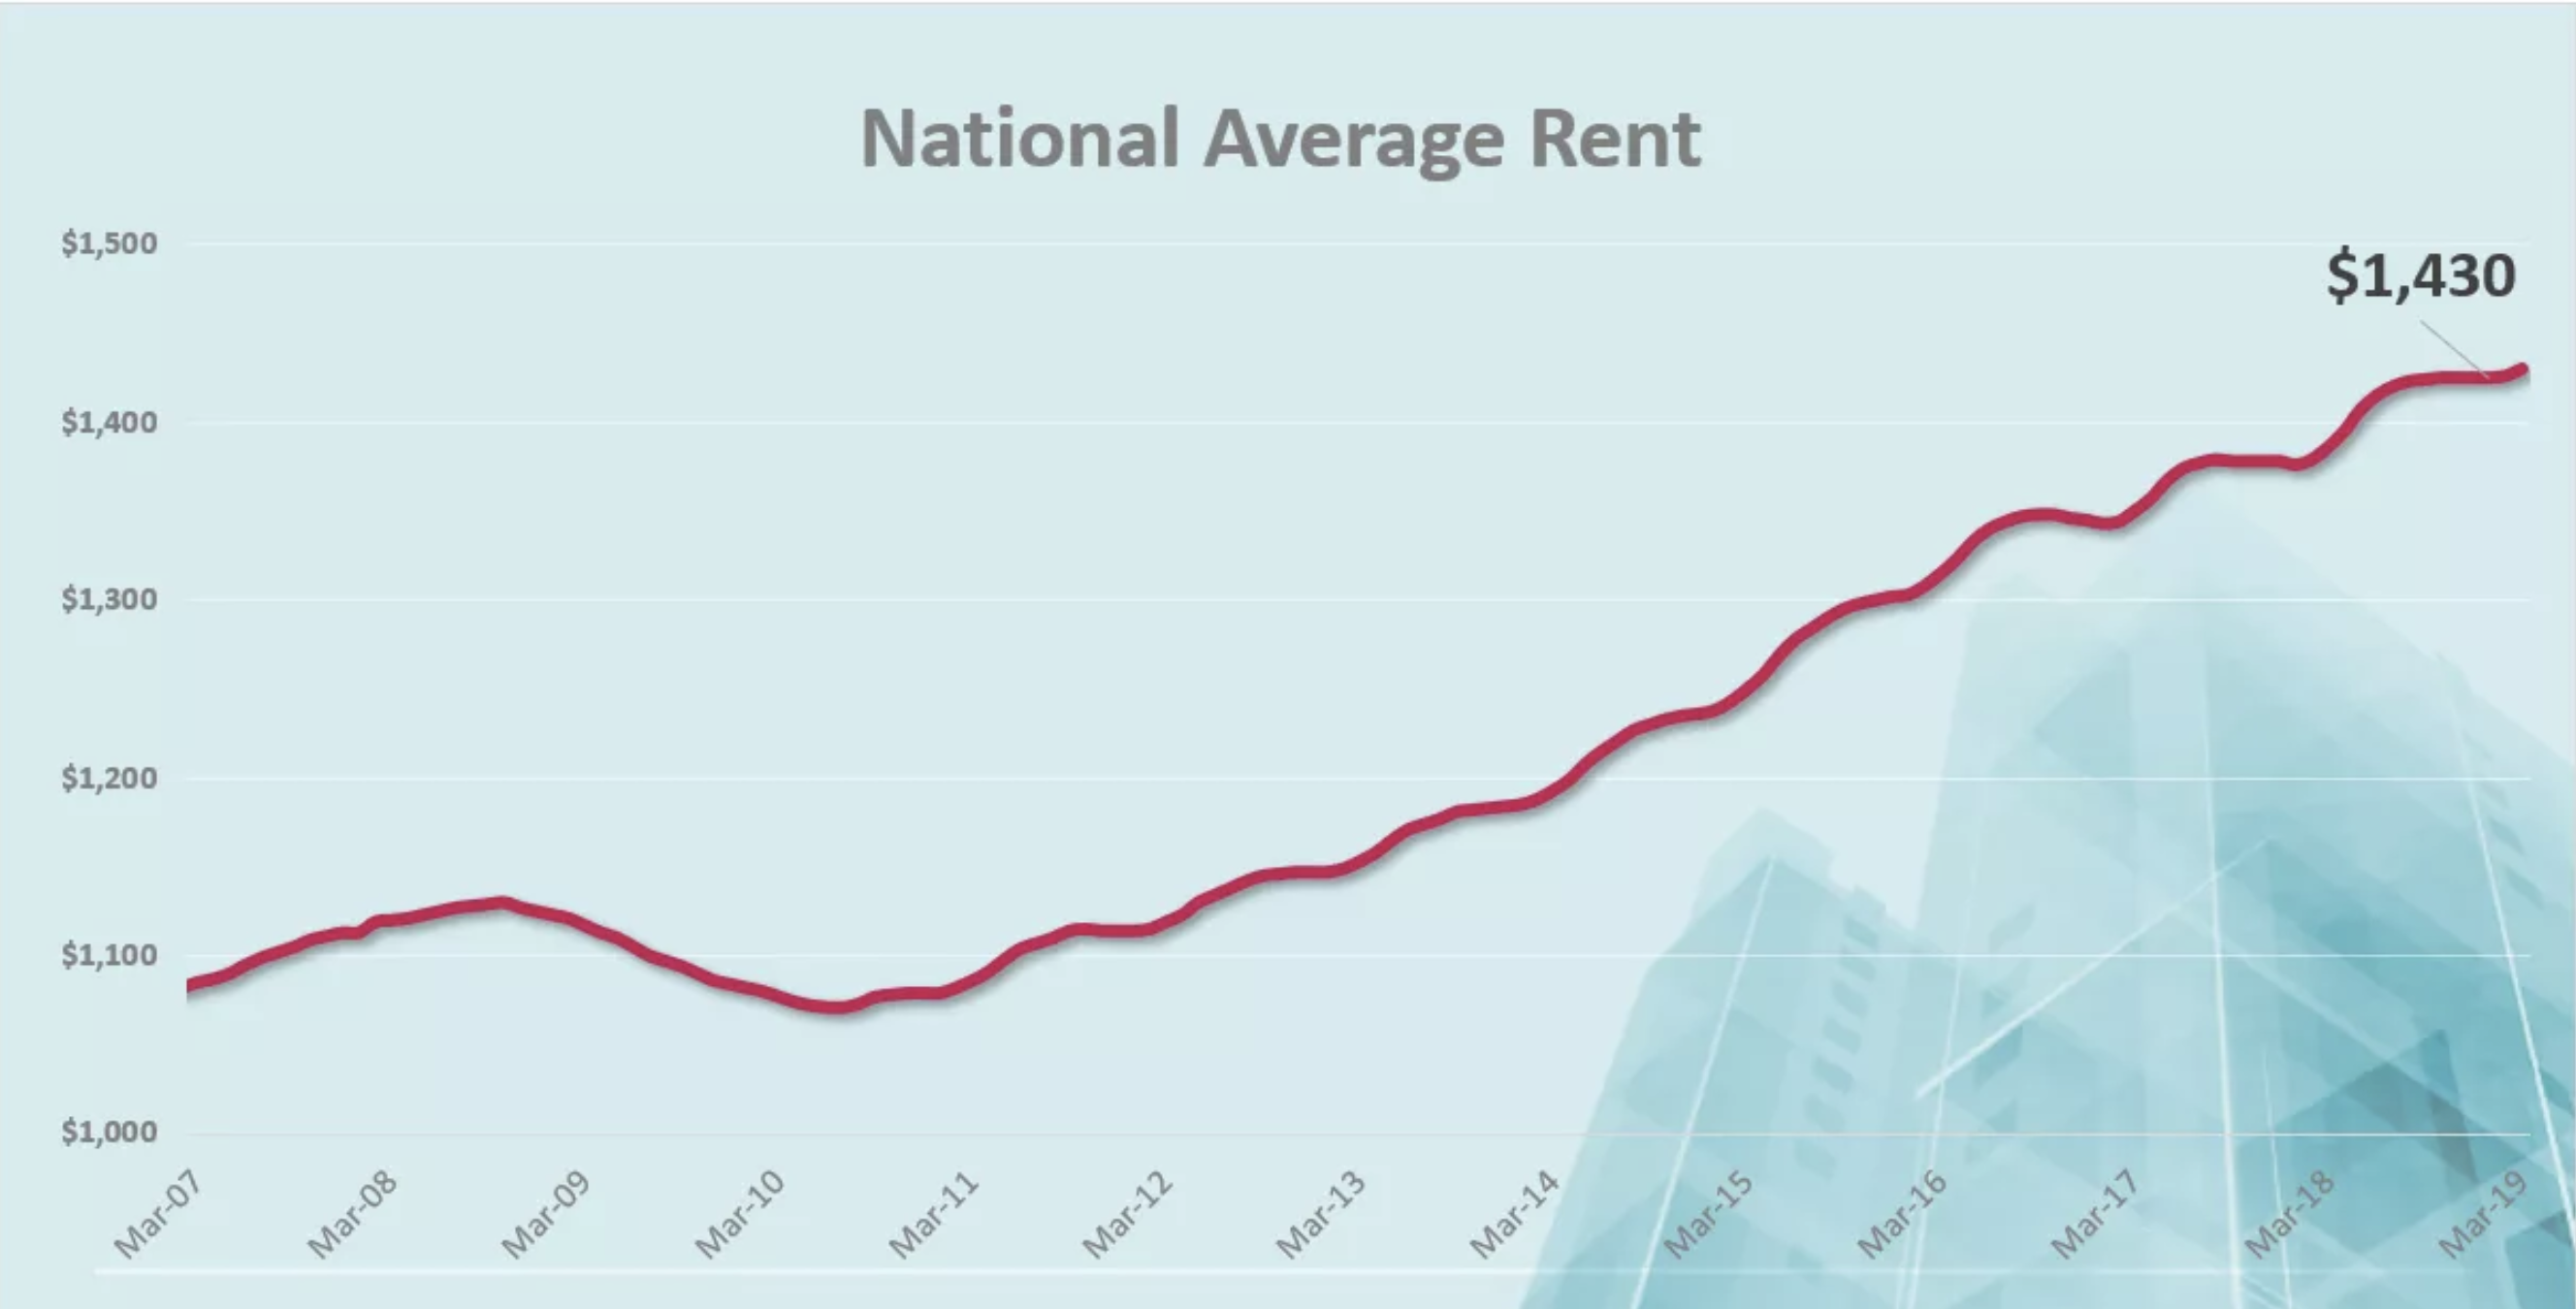 National Average Rent